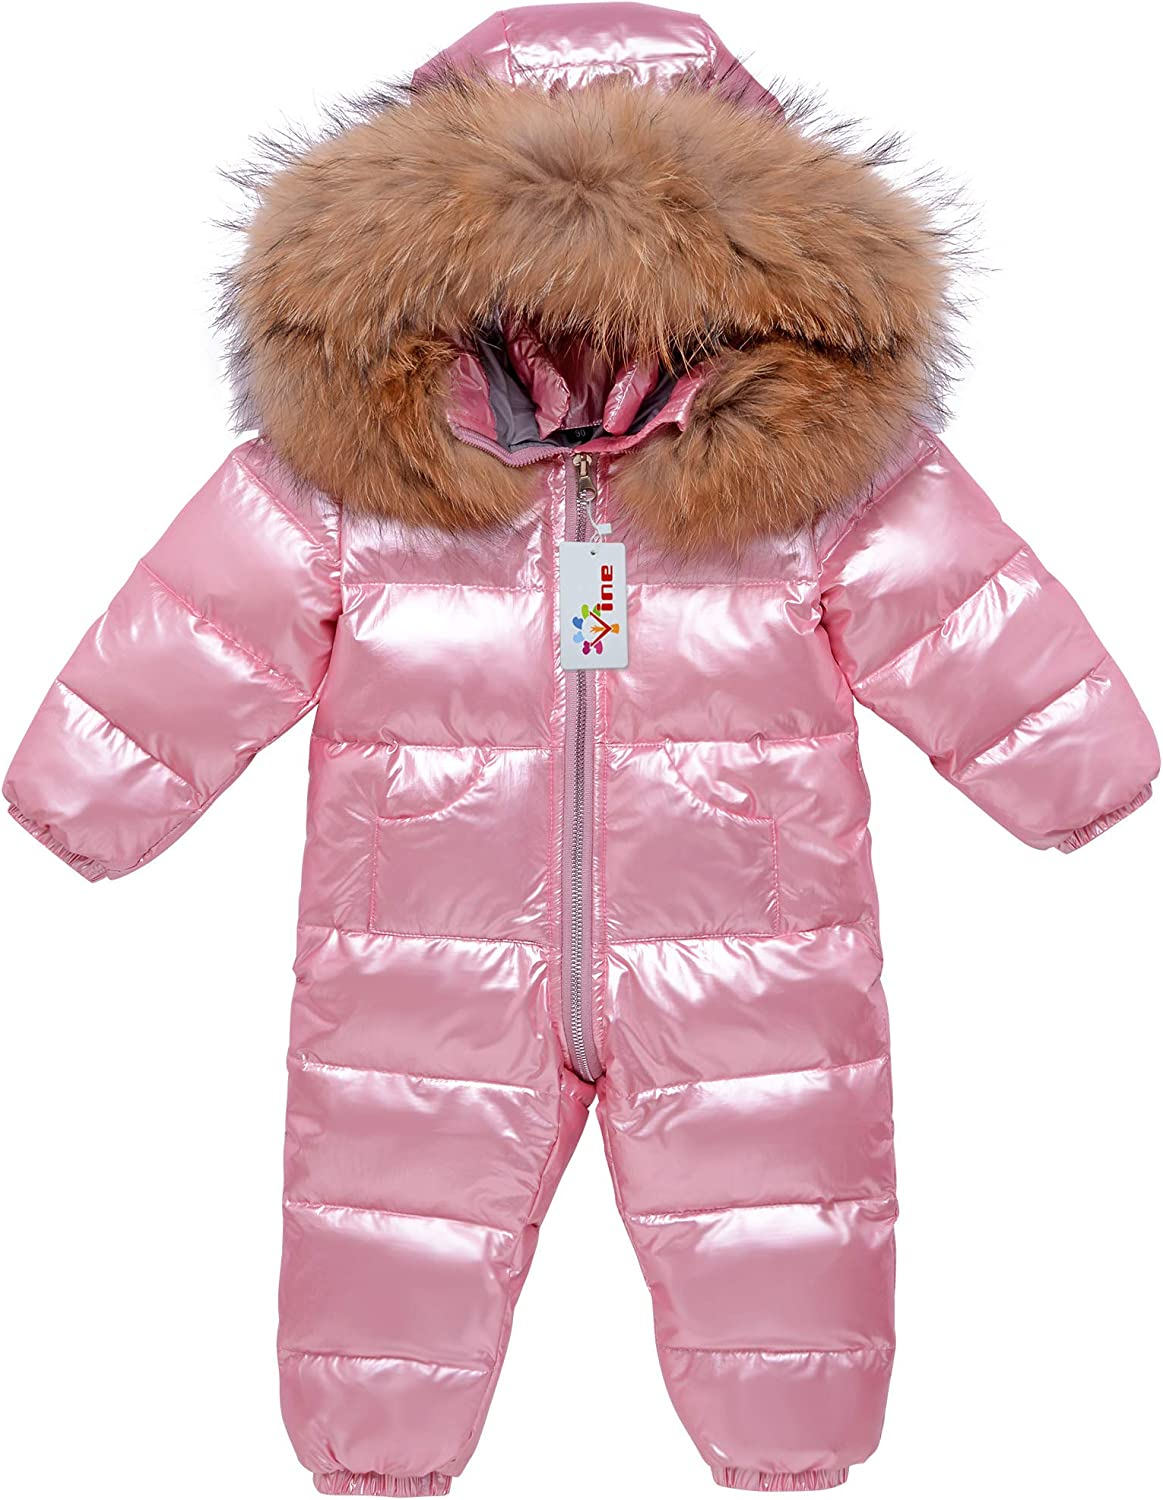 Baby Snowsuit Winter Hooded 35% OFF Romper Down Skisuit Outfits for Warm Opening large release sale